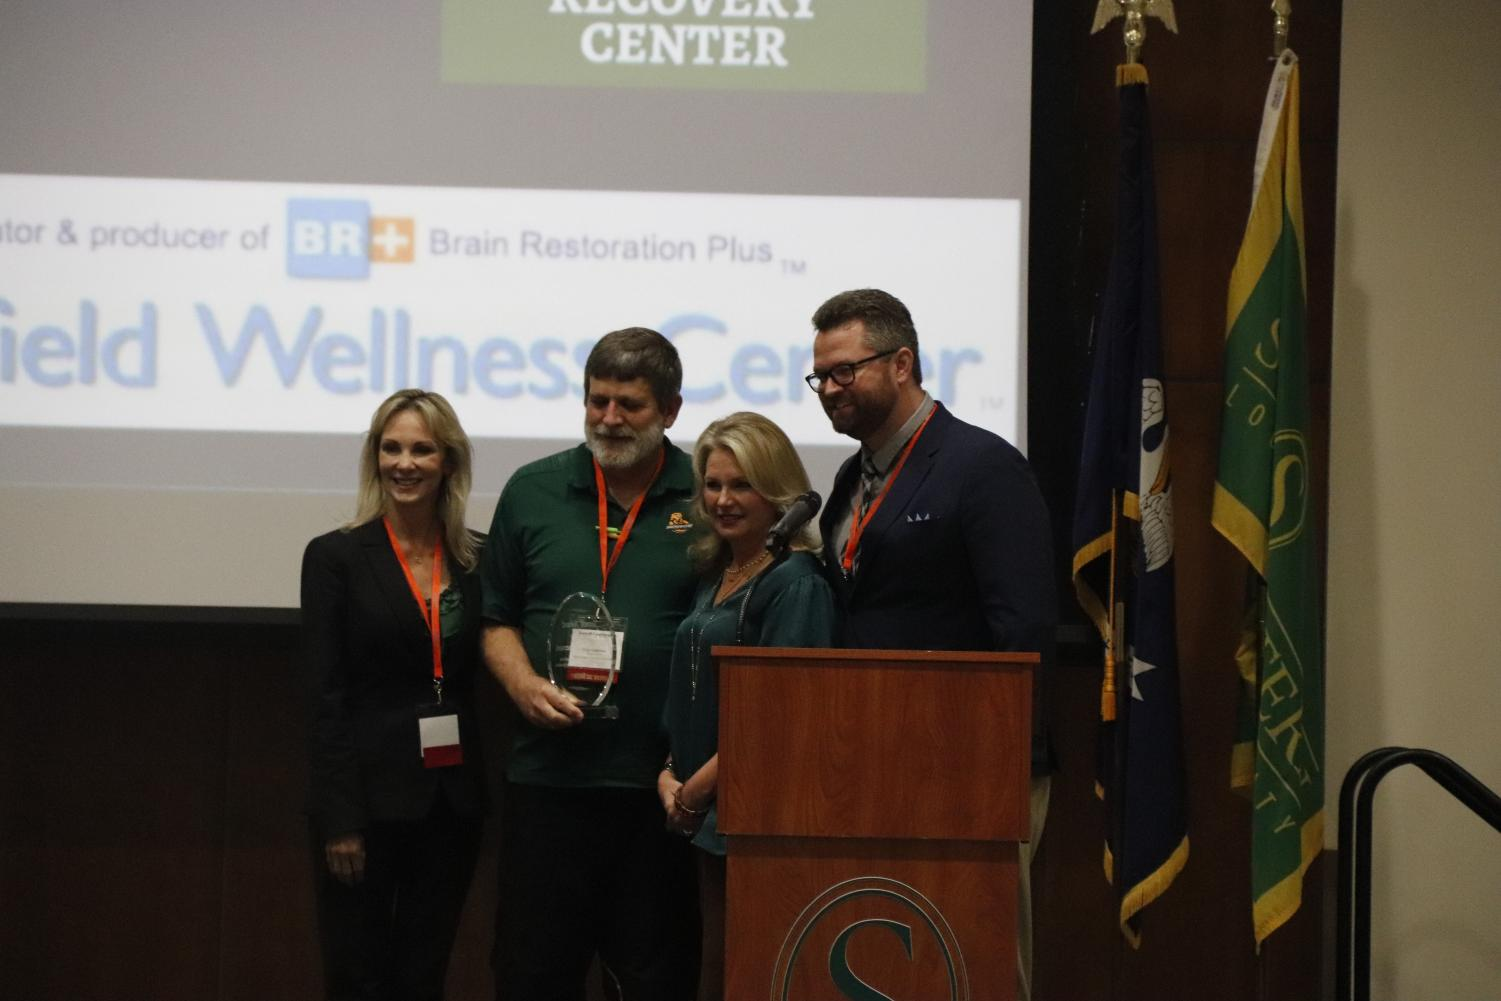 Paige Moody, Dr. Peter Emerson, Krystal Hardison and Tony Terrell take a picture together after Dr. Emerson won the award.